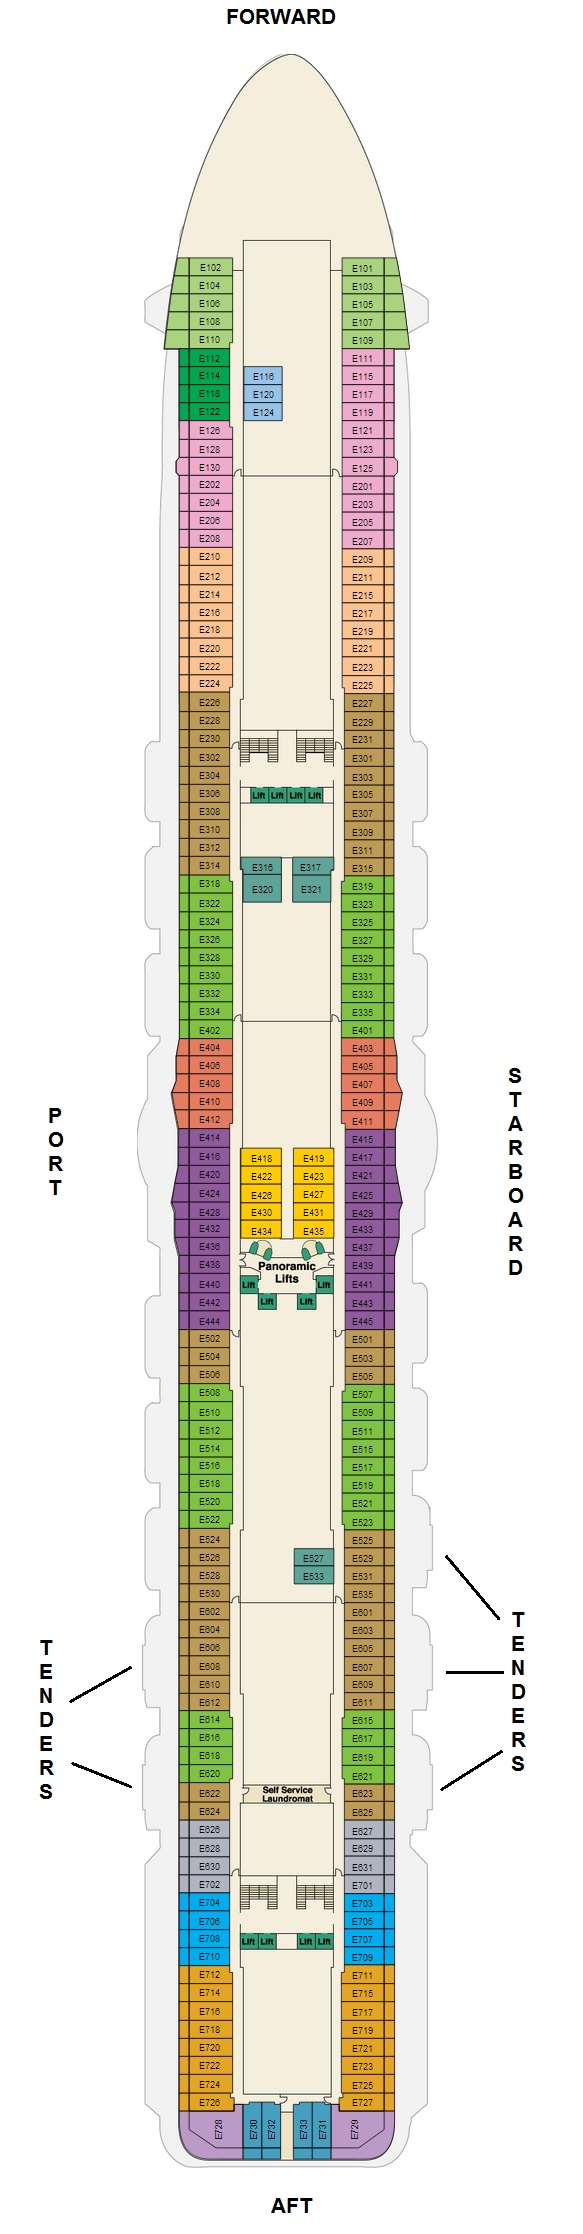 Obstructed view balcony cabins on the royal princess cruise deck plan of emerald deck baanklon Choice Image